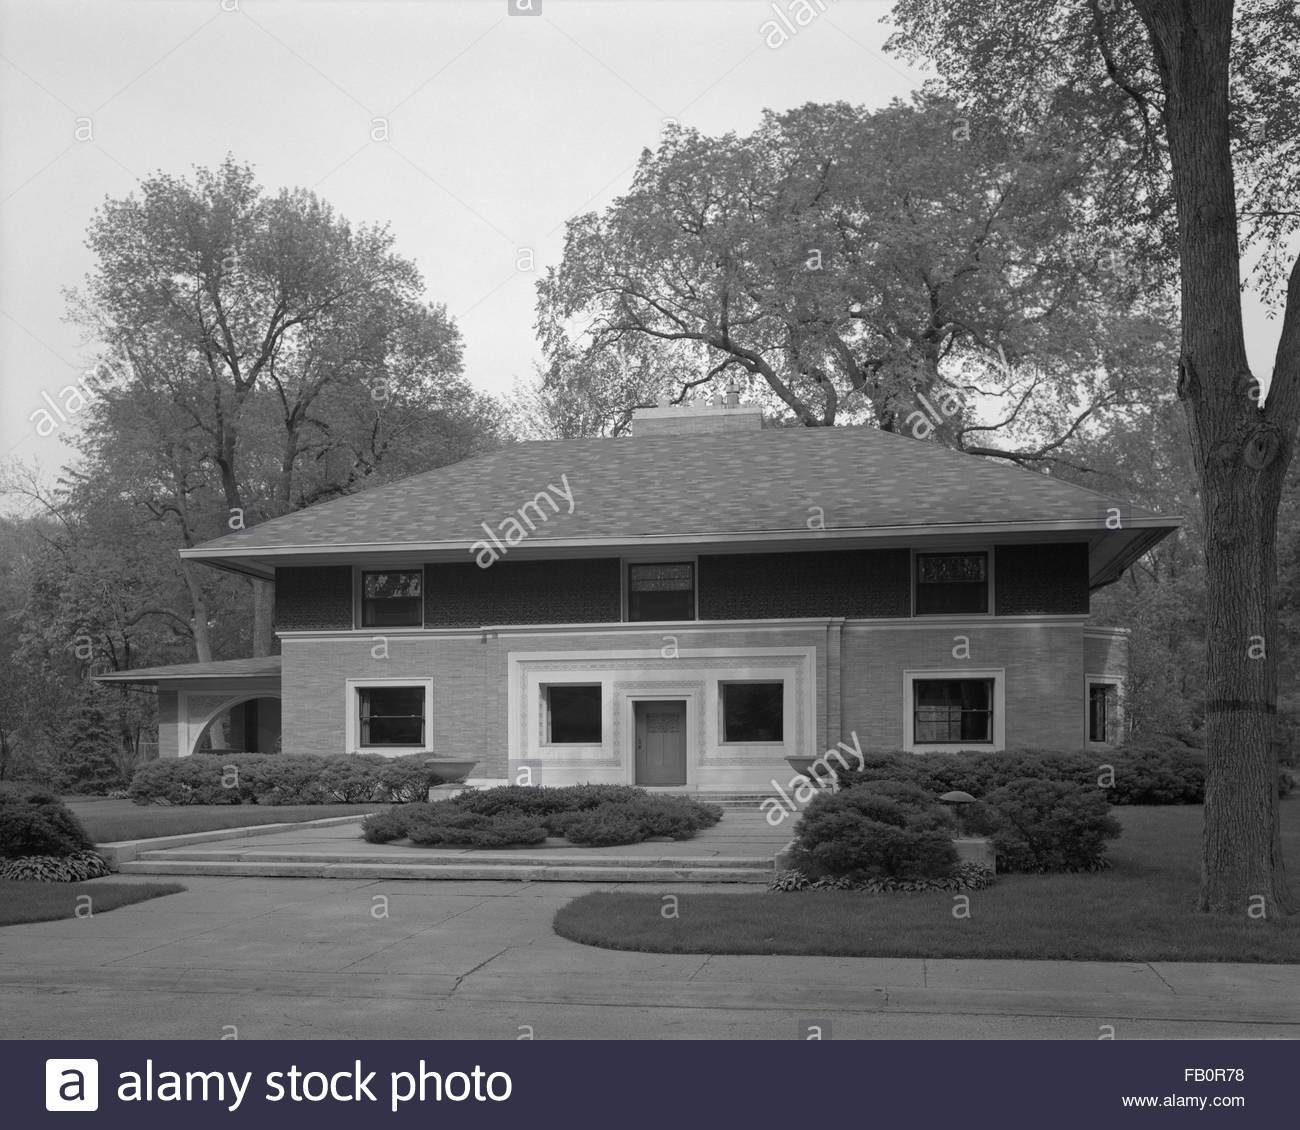 William H. Winslow residence in River Forest (Ill.), 1969. Exterior of the William H. Winslow house at 515 Auvergne - Stock Image